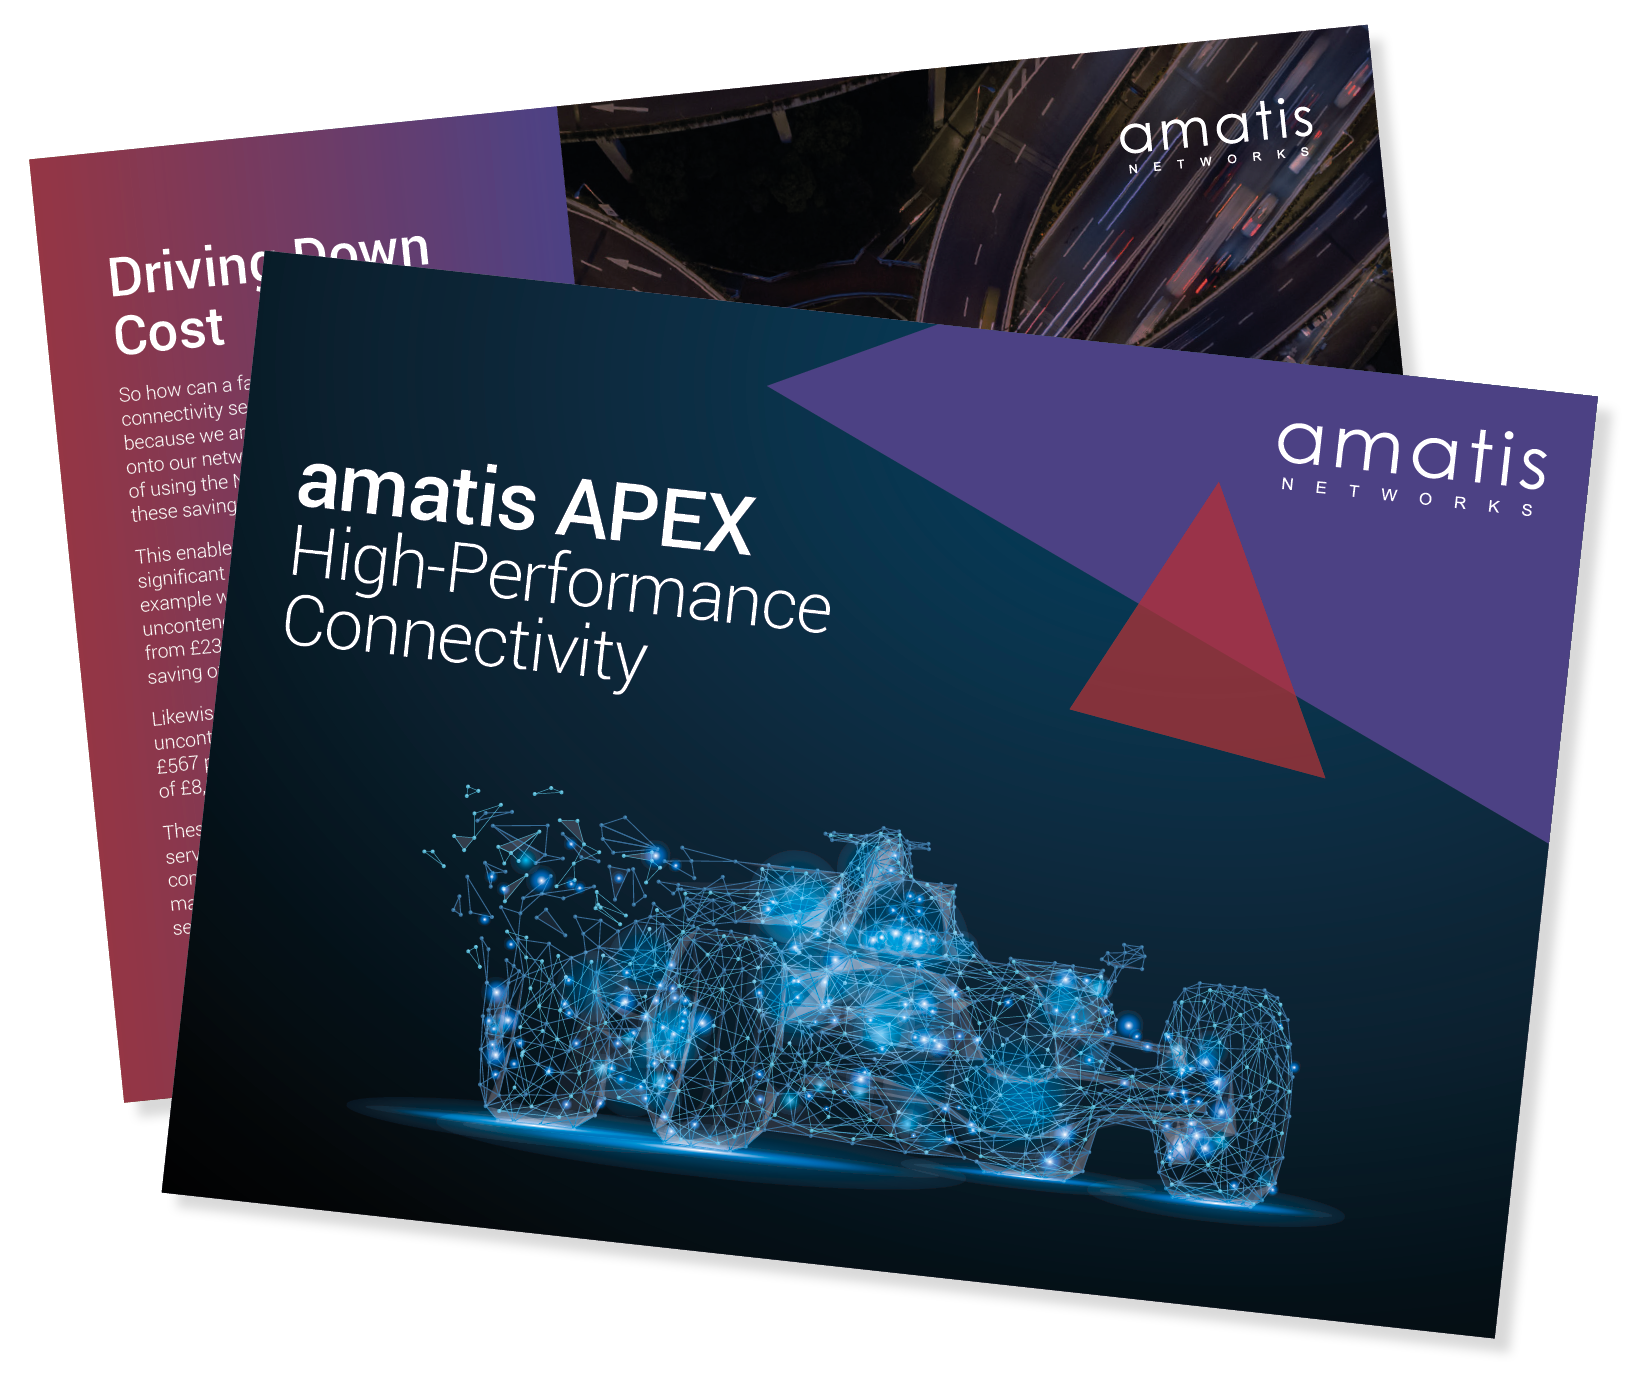 Ebook Amatis Networks Cloud and connectivity APEX